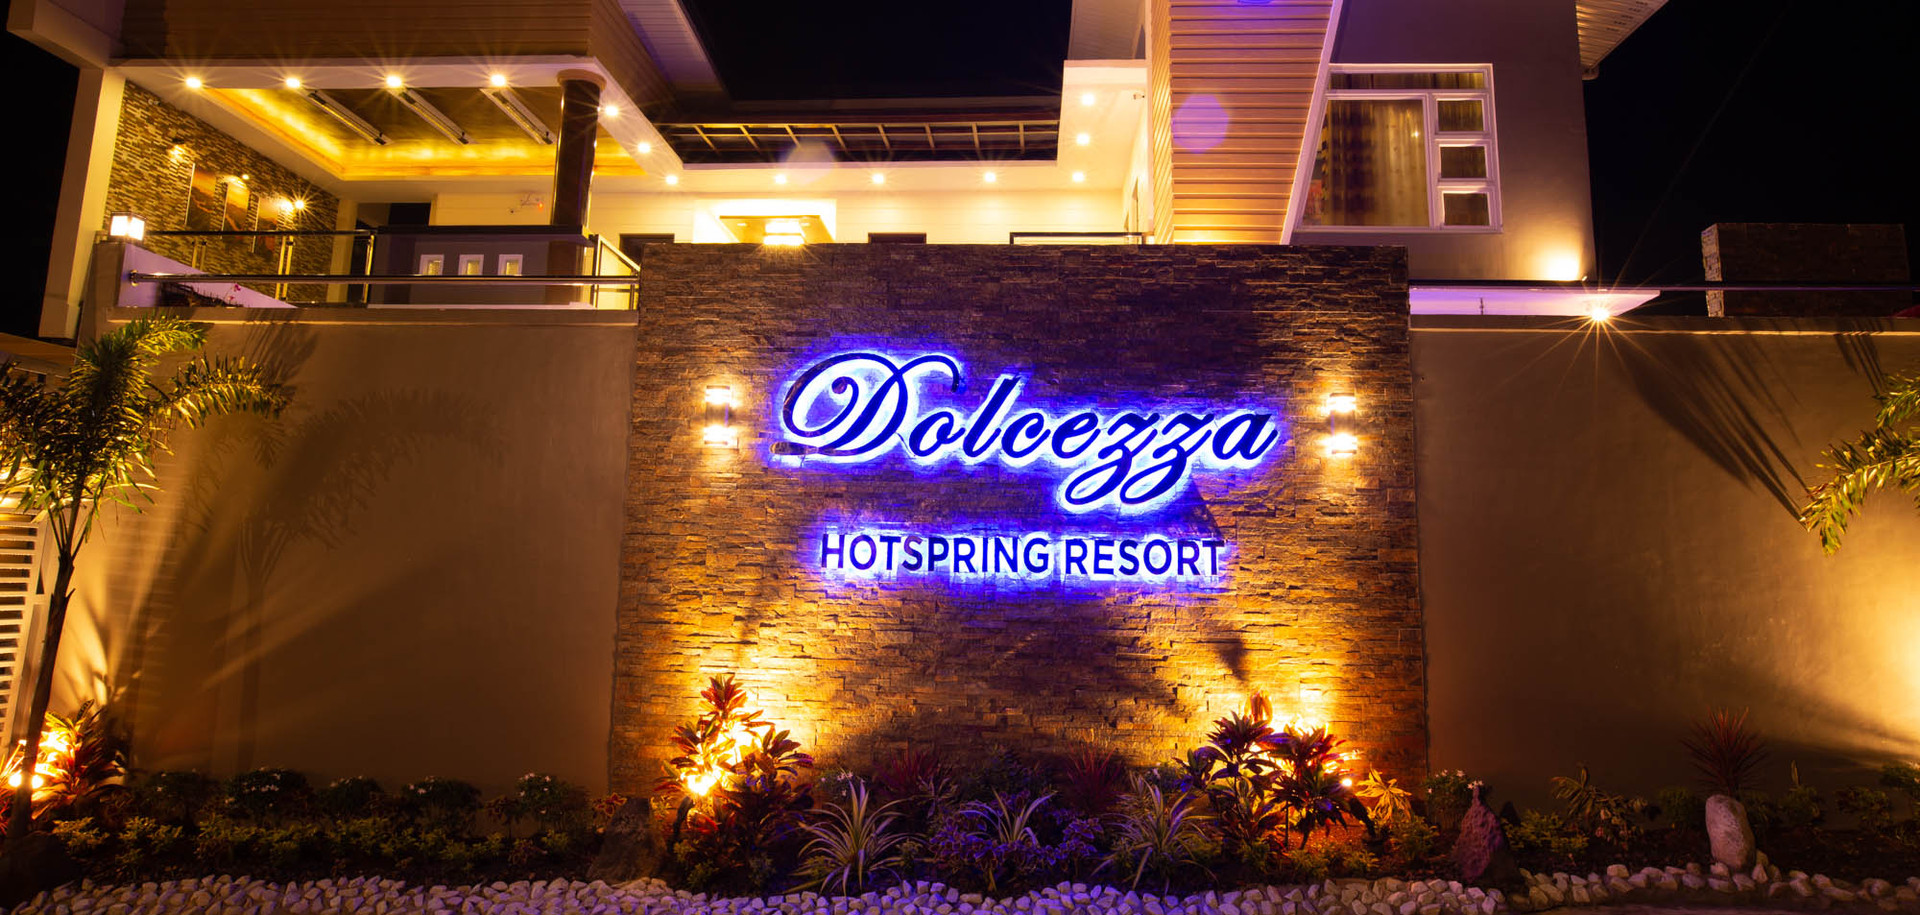 Dolcezza Hotspring Resort